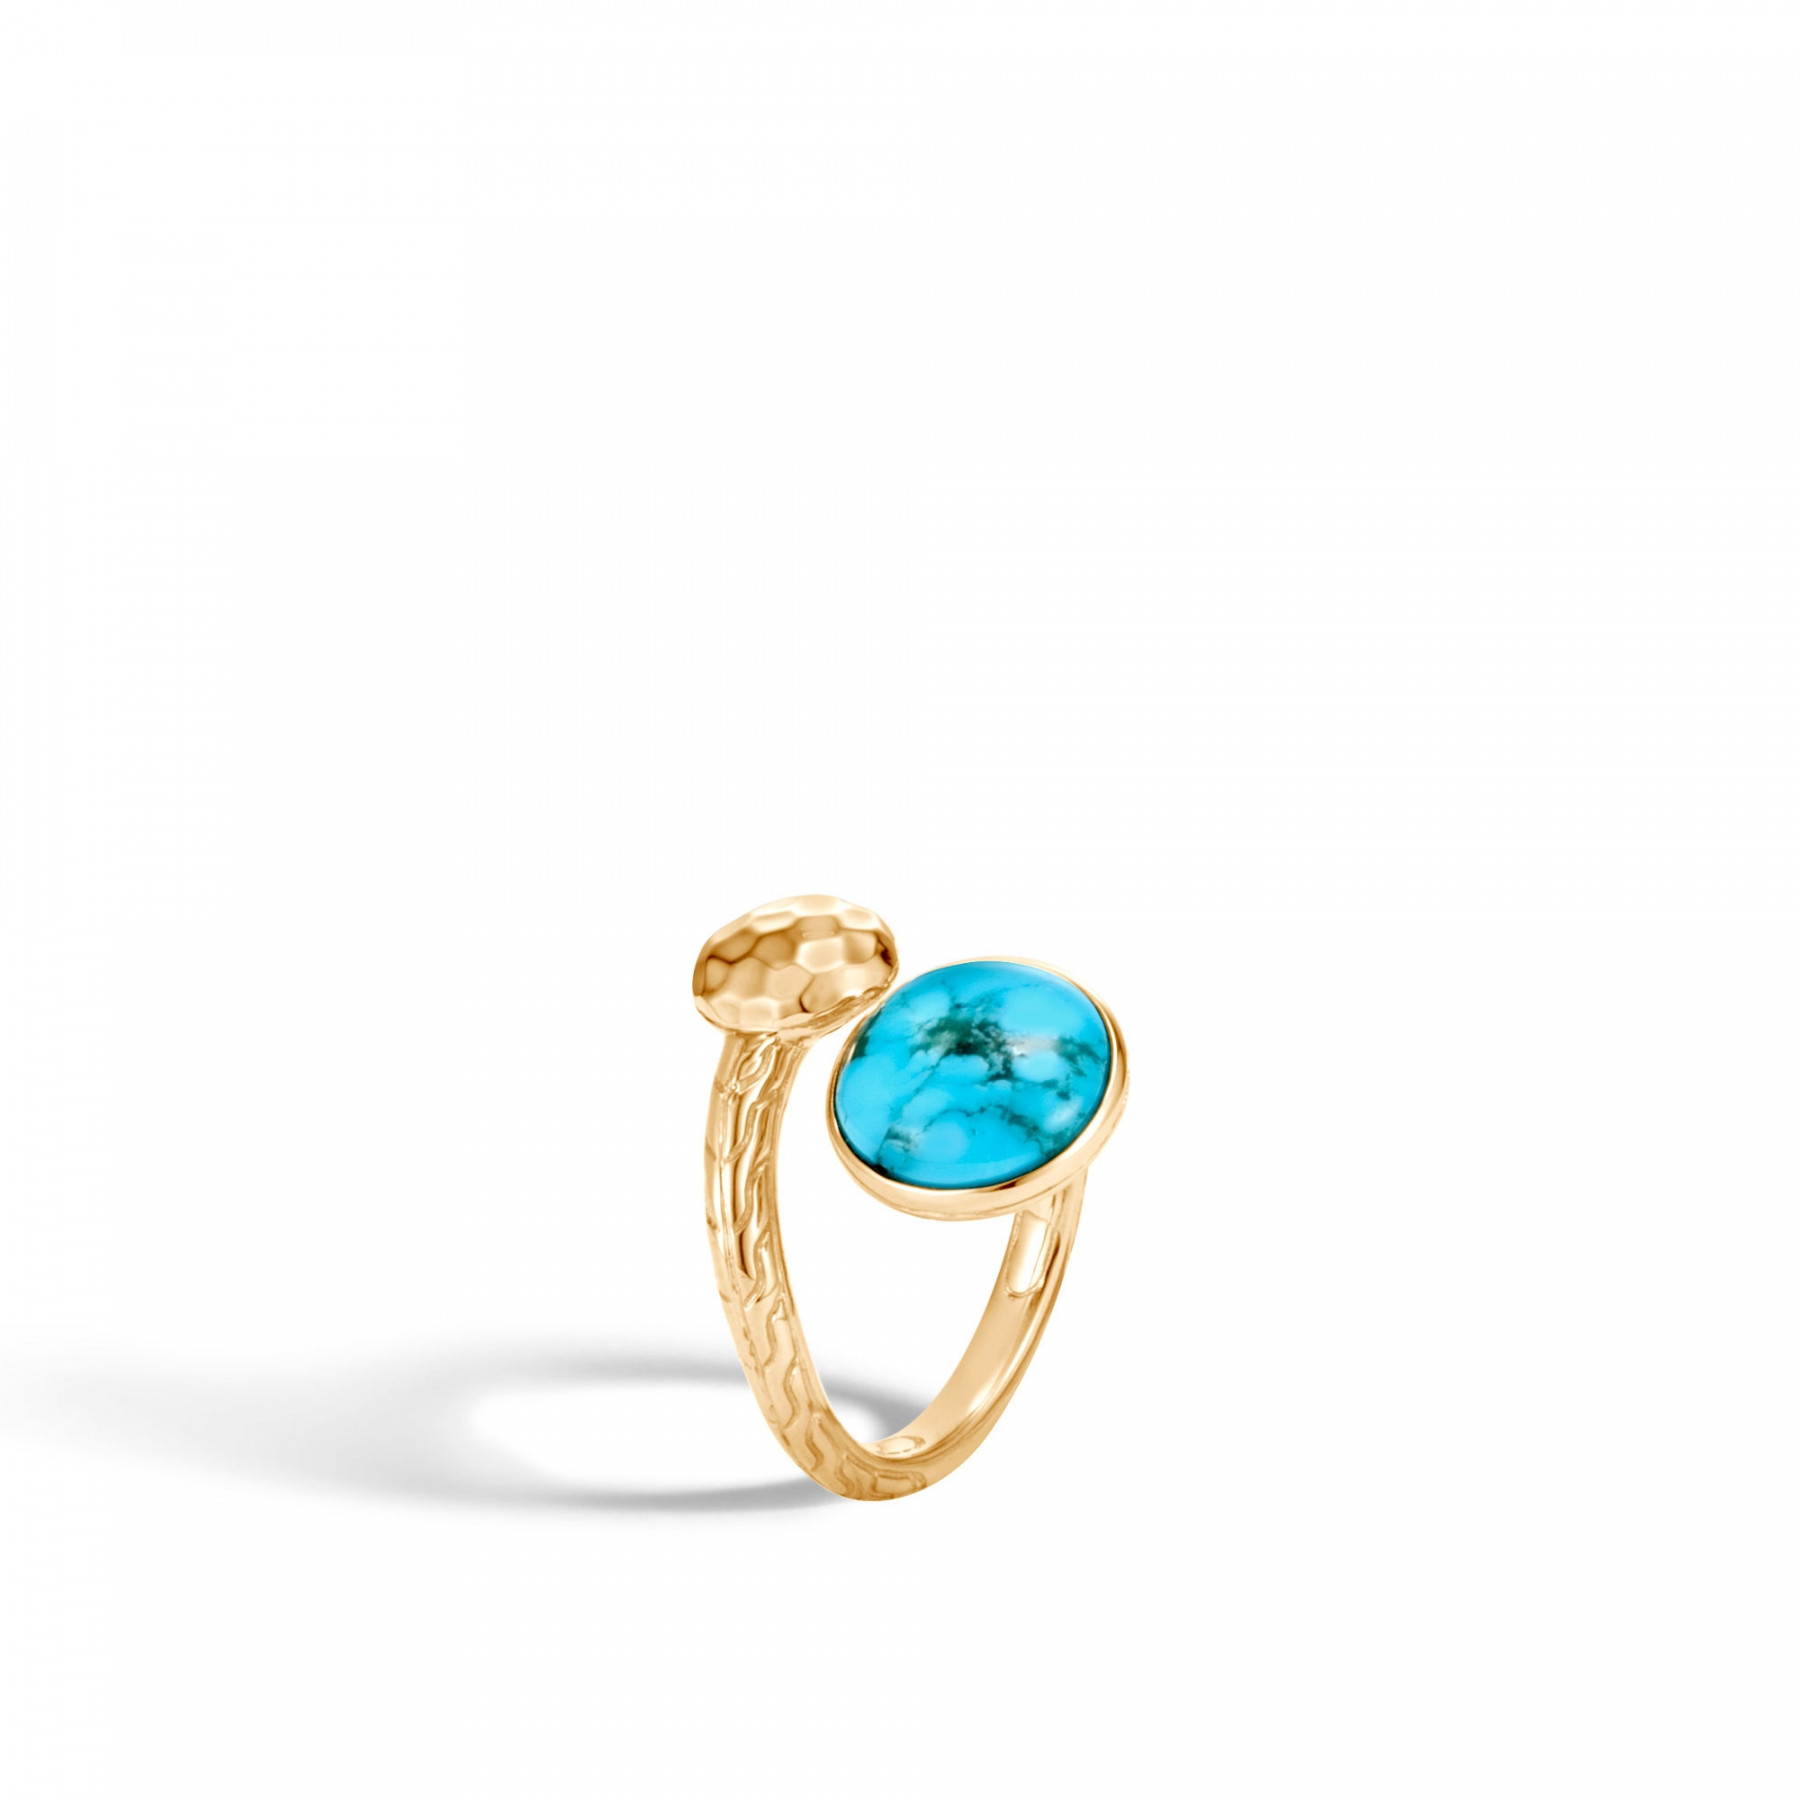 John Hardy Dot Bypass Turquoise Ring in 18k Yellow Gold angle view